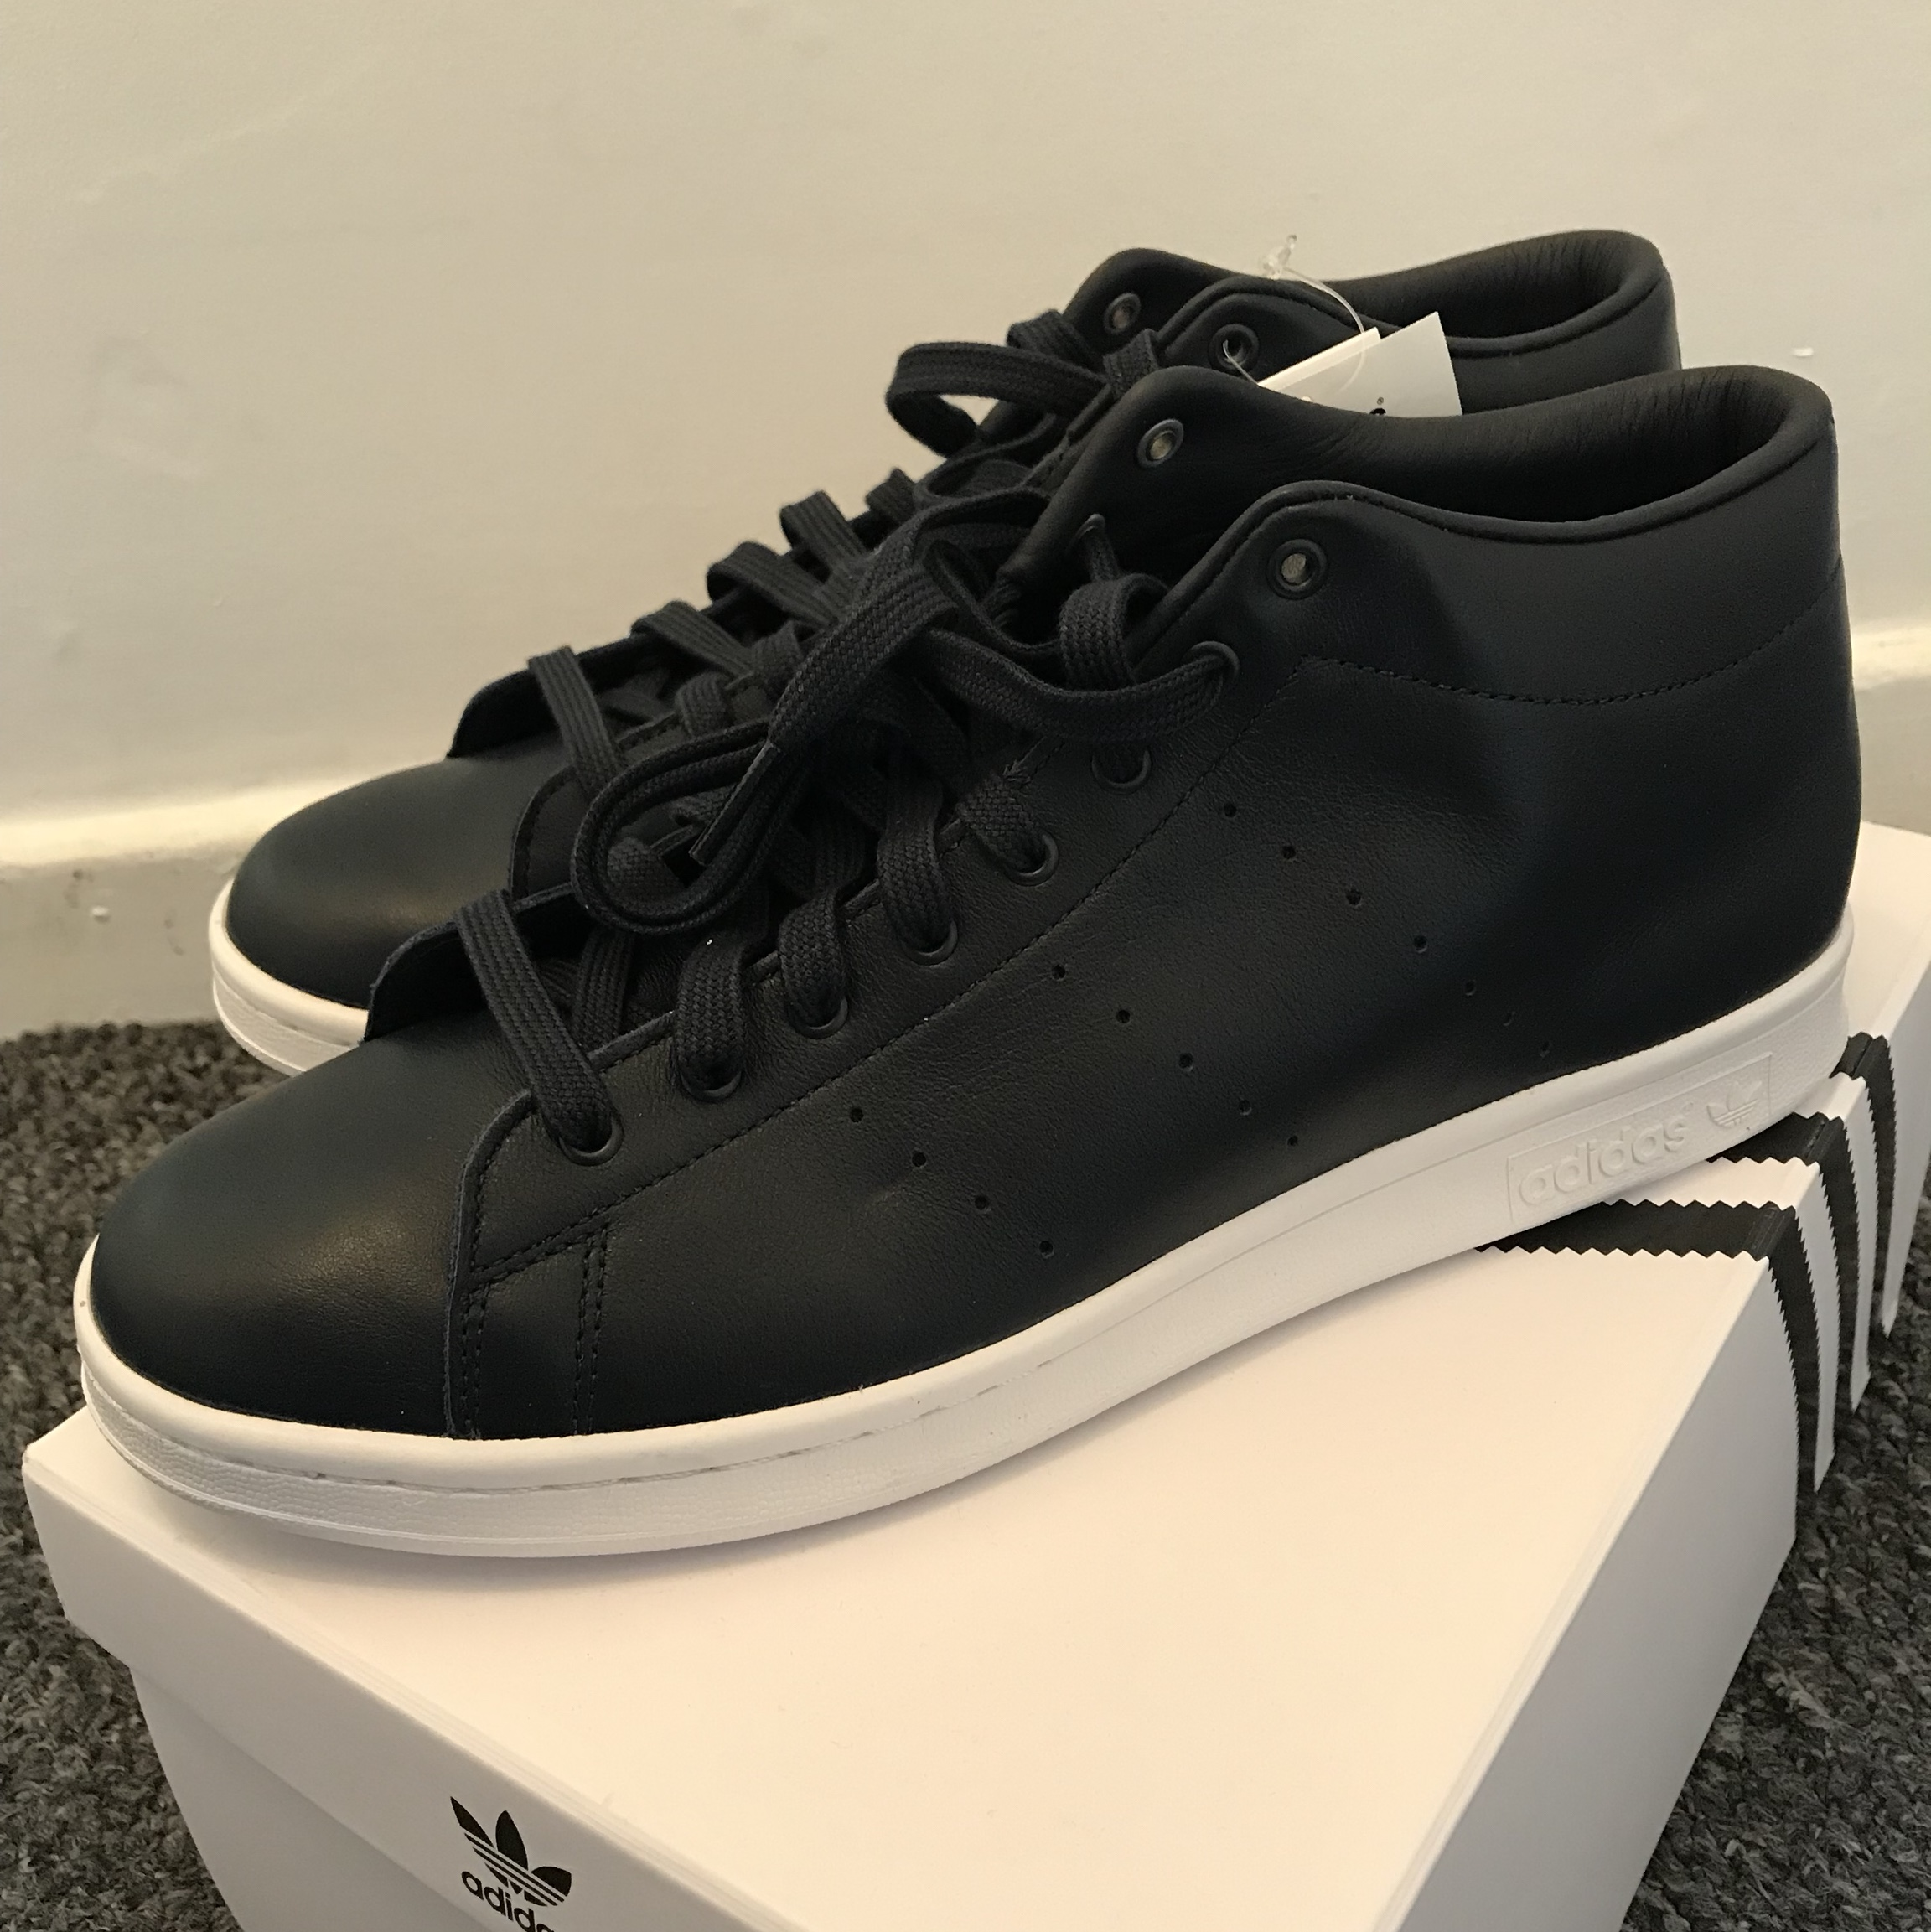 finest selection 4d2dc f3a56 Adidas x hyke aoh-001 hi Stan smith Trainers uk size... - Depop